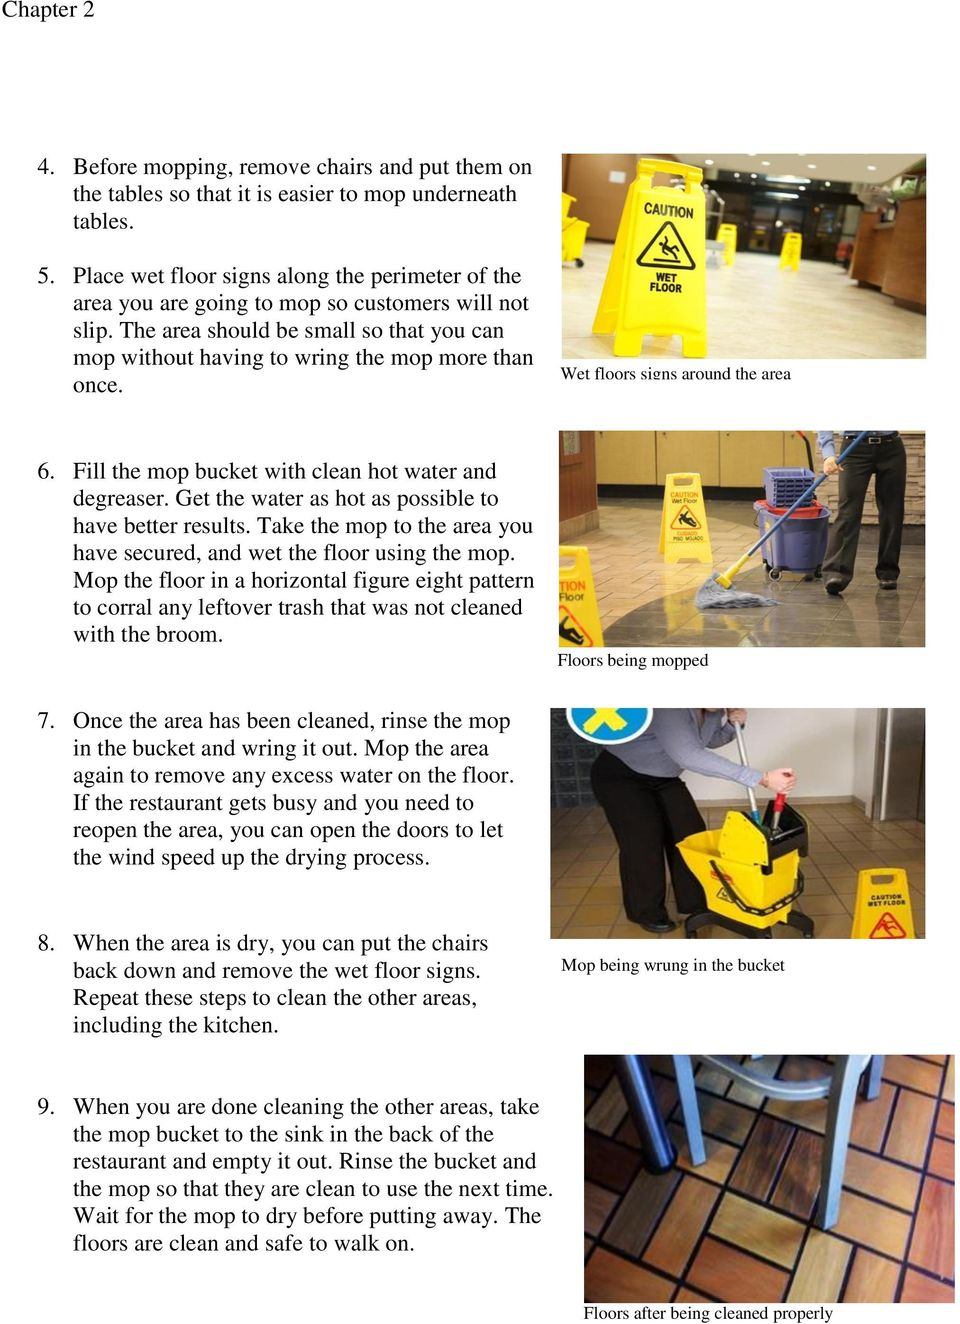 Wet floors signs around the area 6. Fill the mop bucket with clean hot water and degreaser. Get the water as hot as possible to have better results.